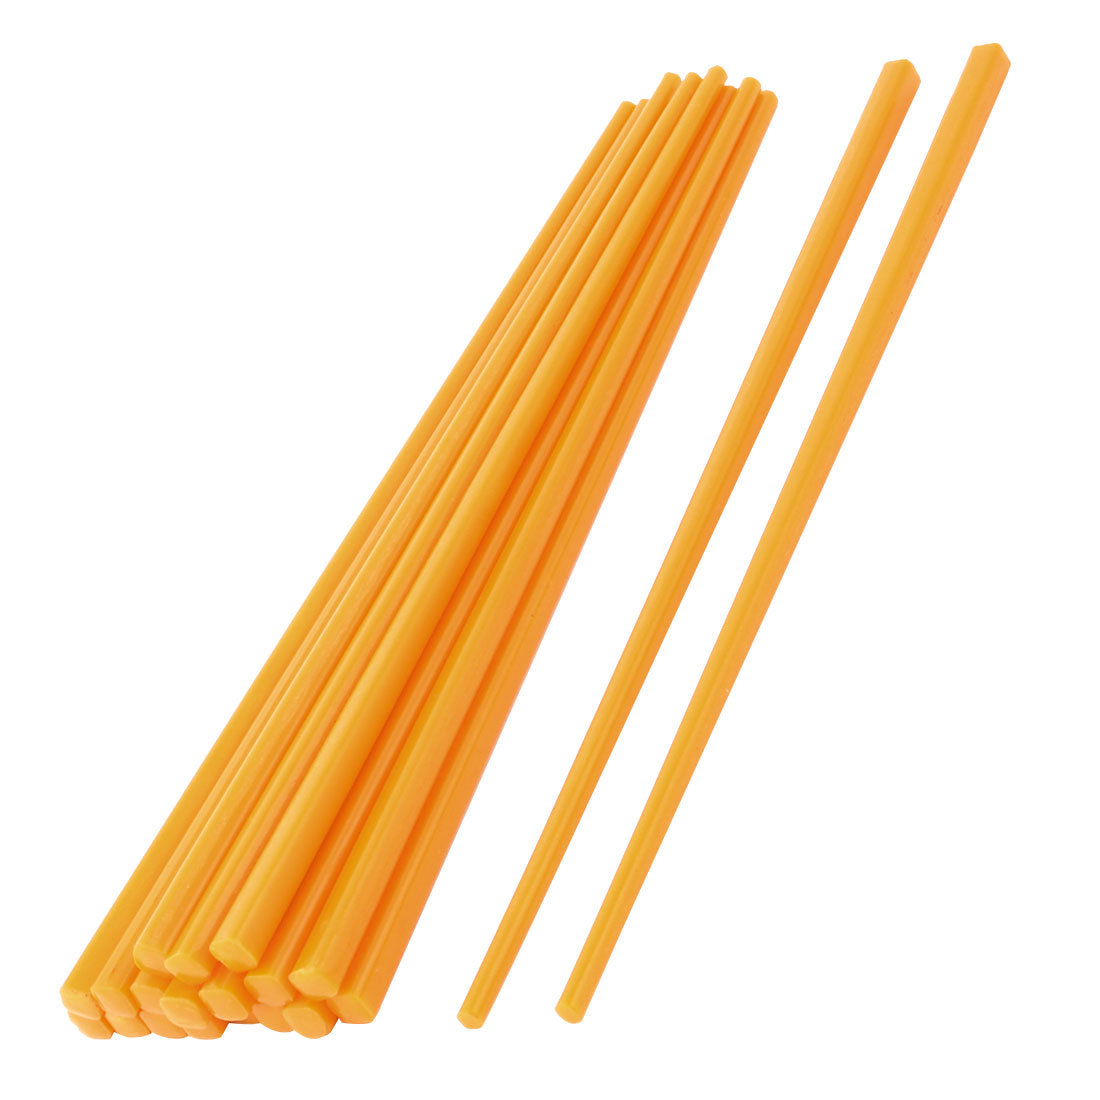 Household Tableware Plastic Chinese Chopsticks Orange 22cm Length 10 Pairs